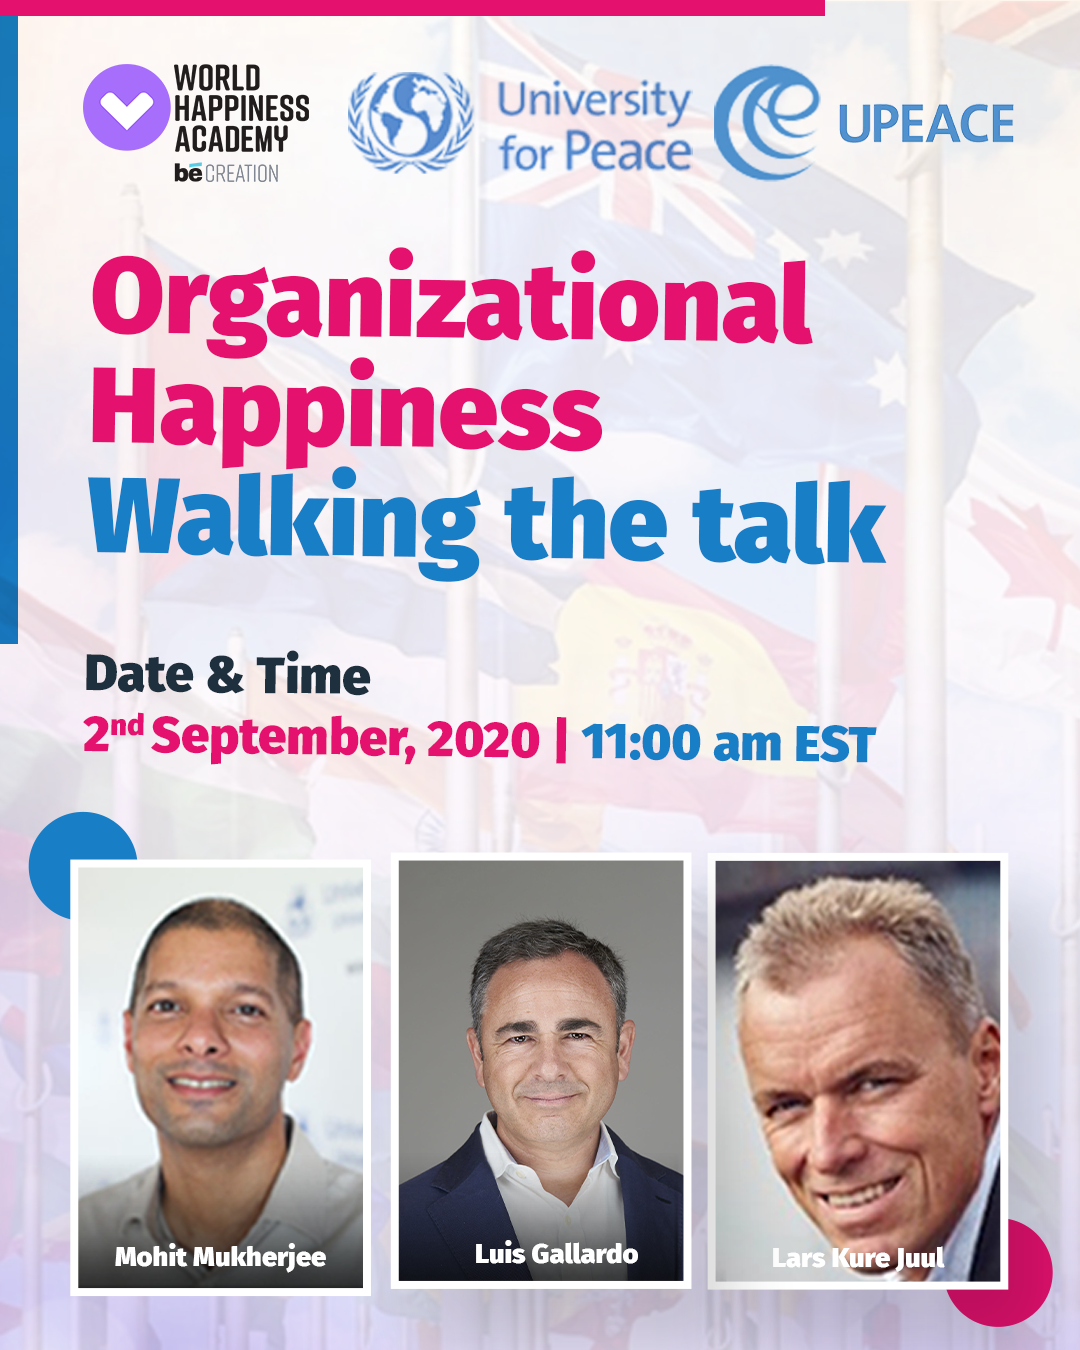 Are we ready for a society of happiness and wellbeing?